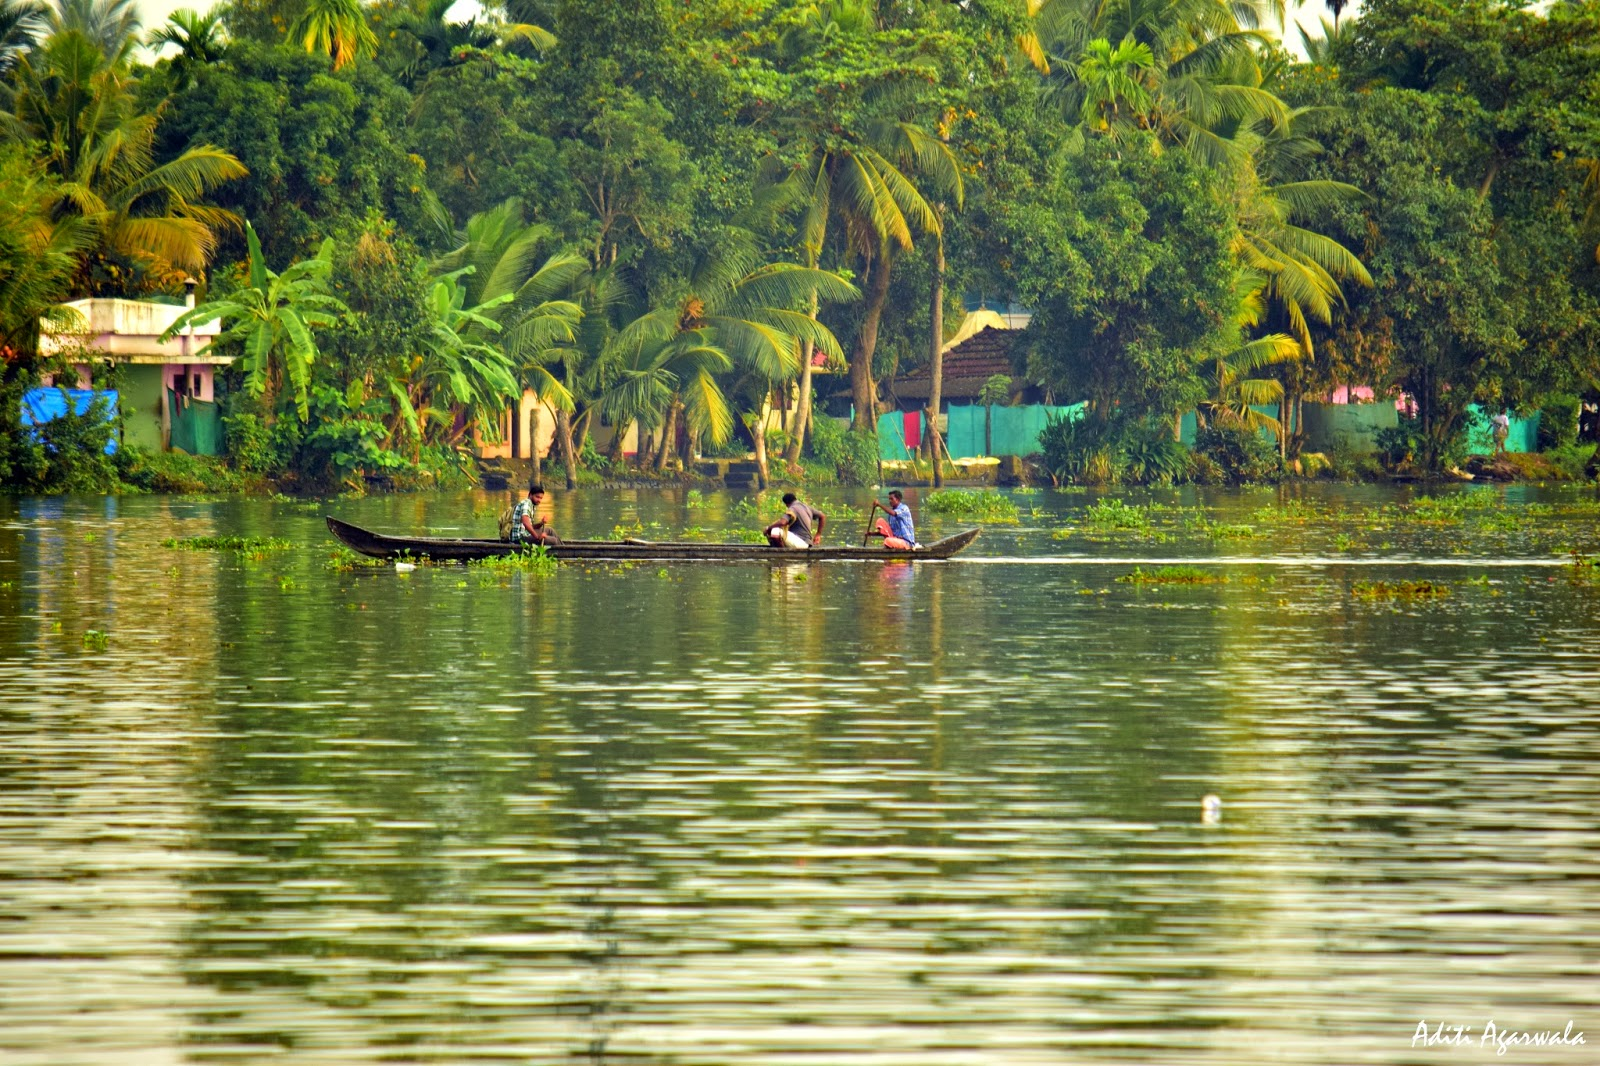 Fishermen rowing in the backwaters of Allepey, Kerala